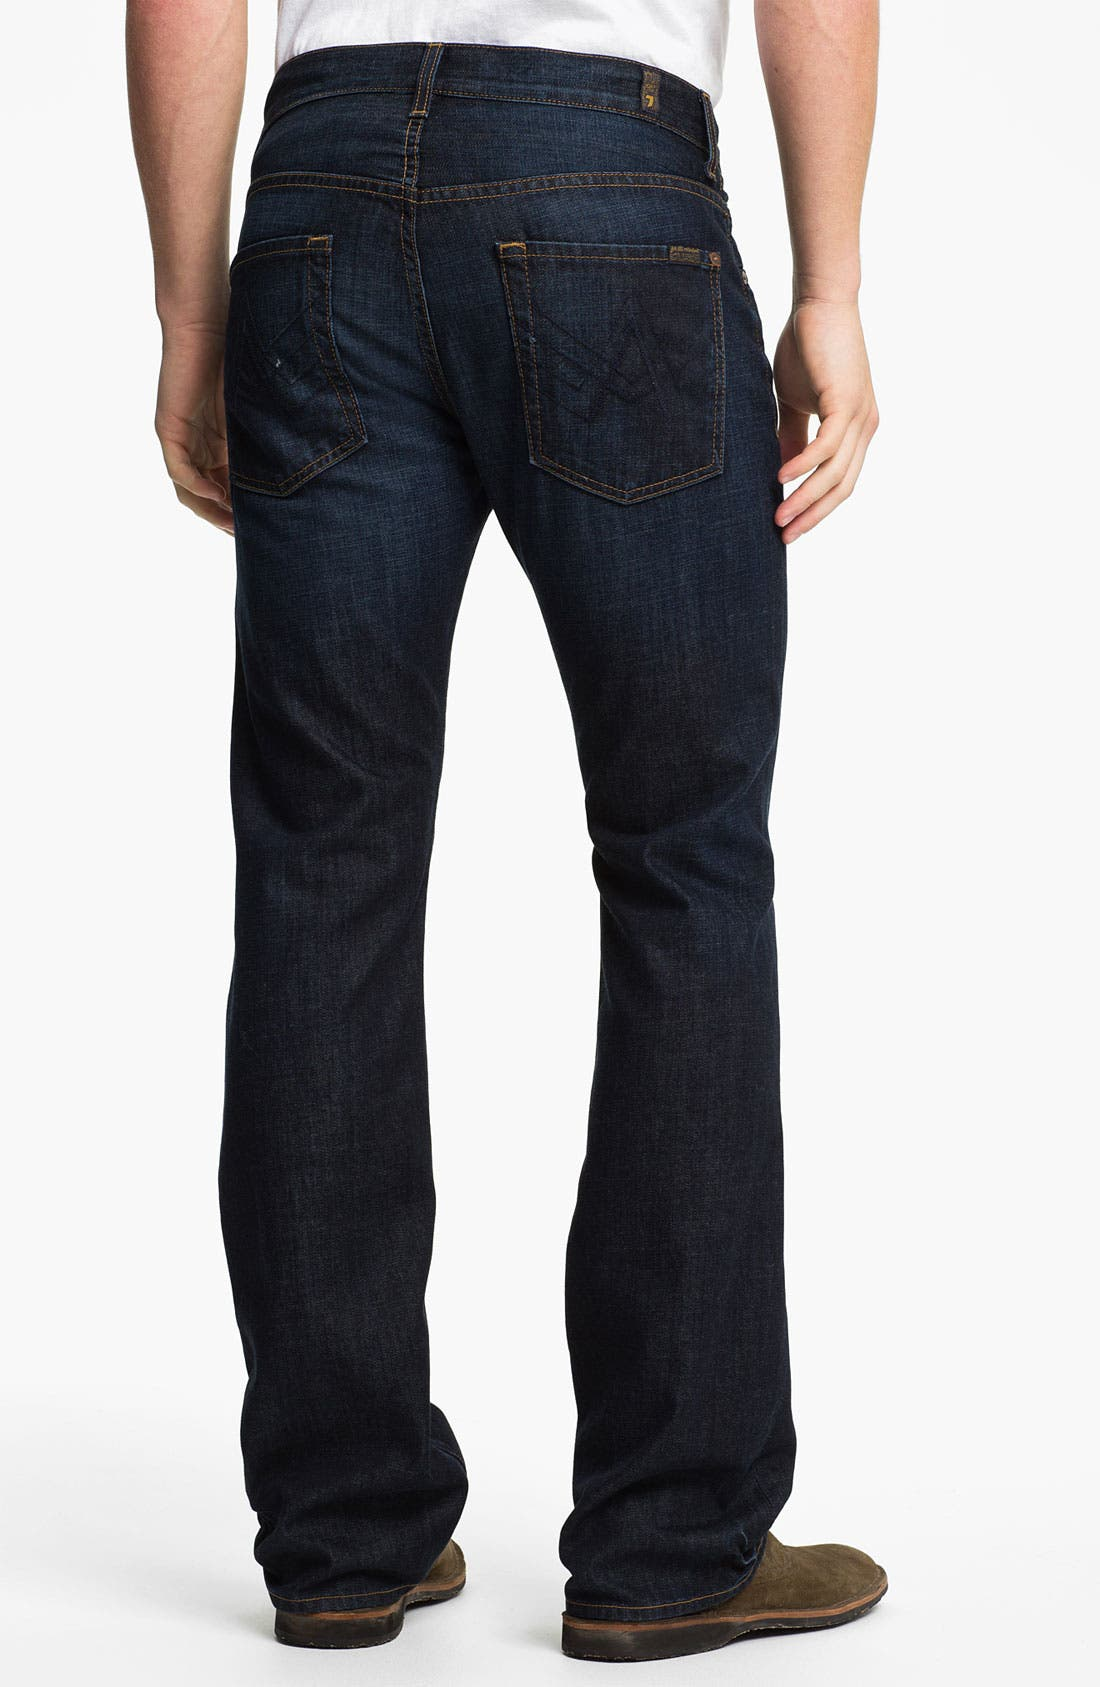 Alternate Image 1 Selected - 7 For All Mankind® 'Brett' Bootcut Jeans (Hollenbeck)